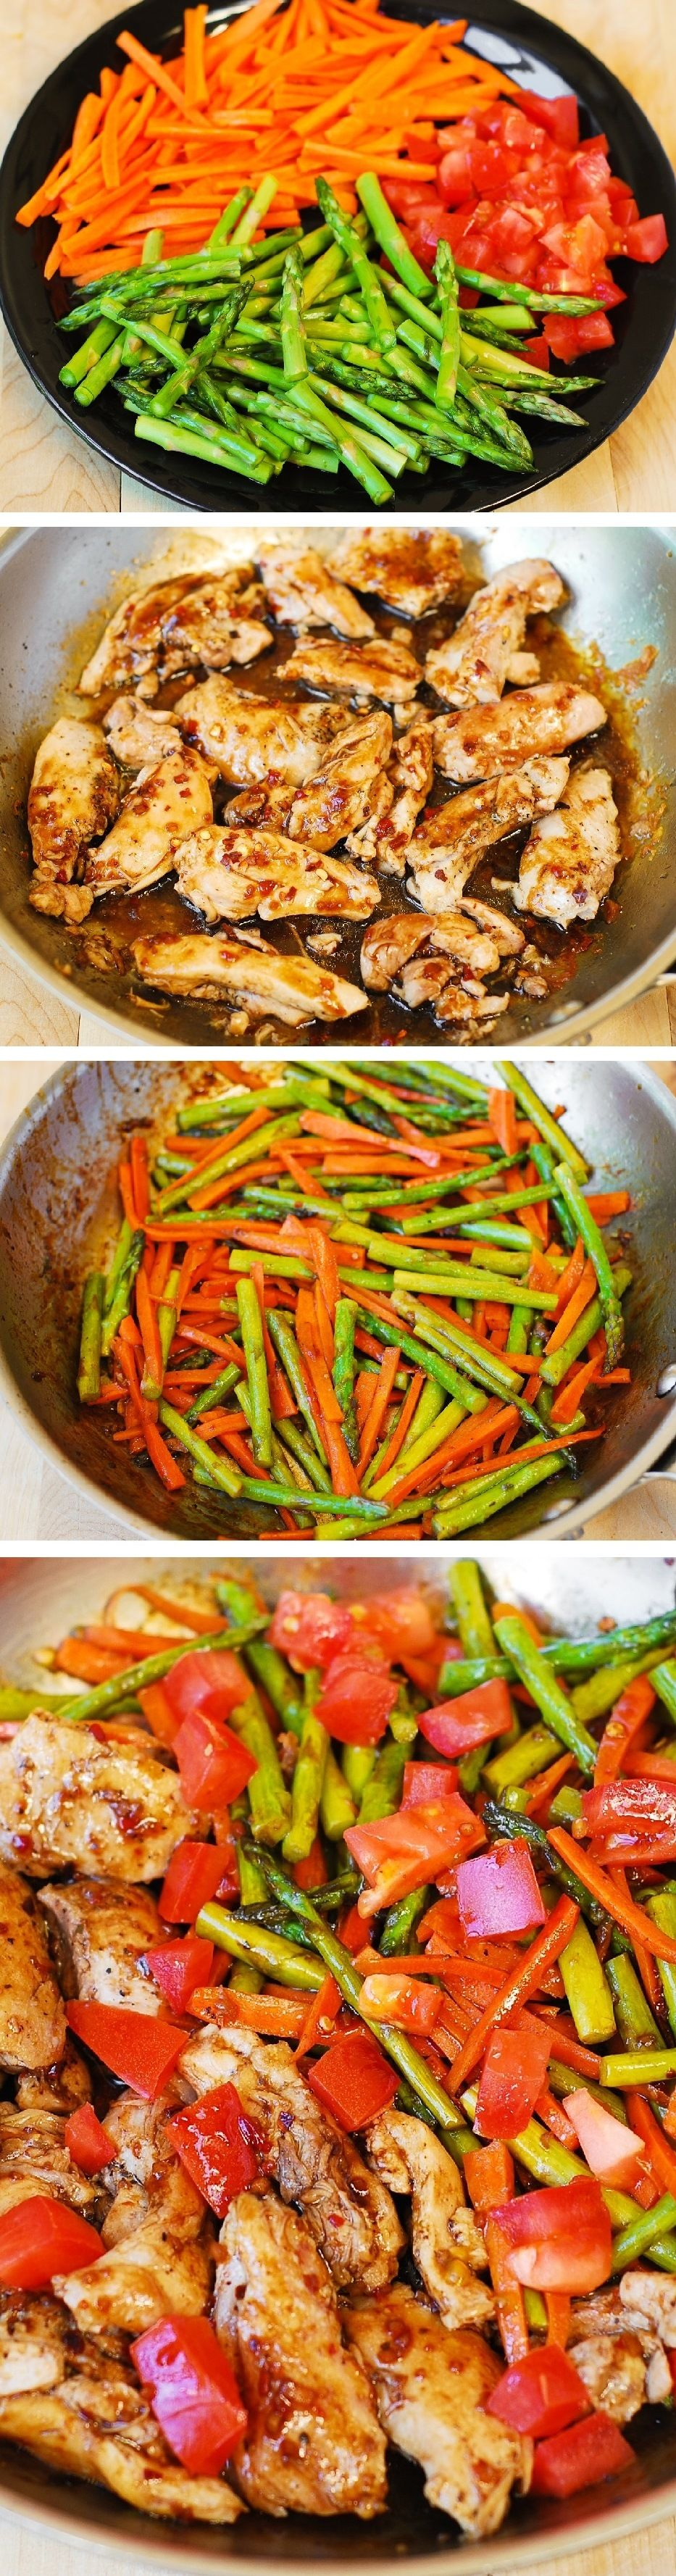 Balsamic Chicken And Vegetables Recipe Healthy Food Low Cholesterol Recipes